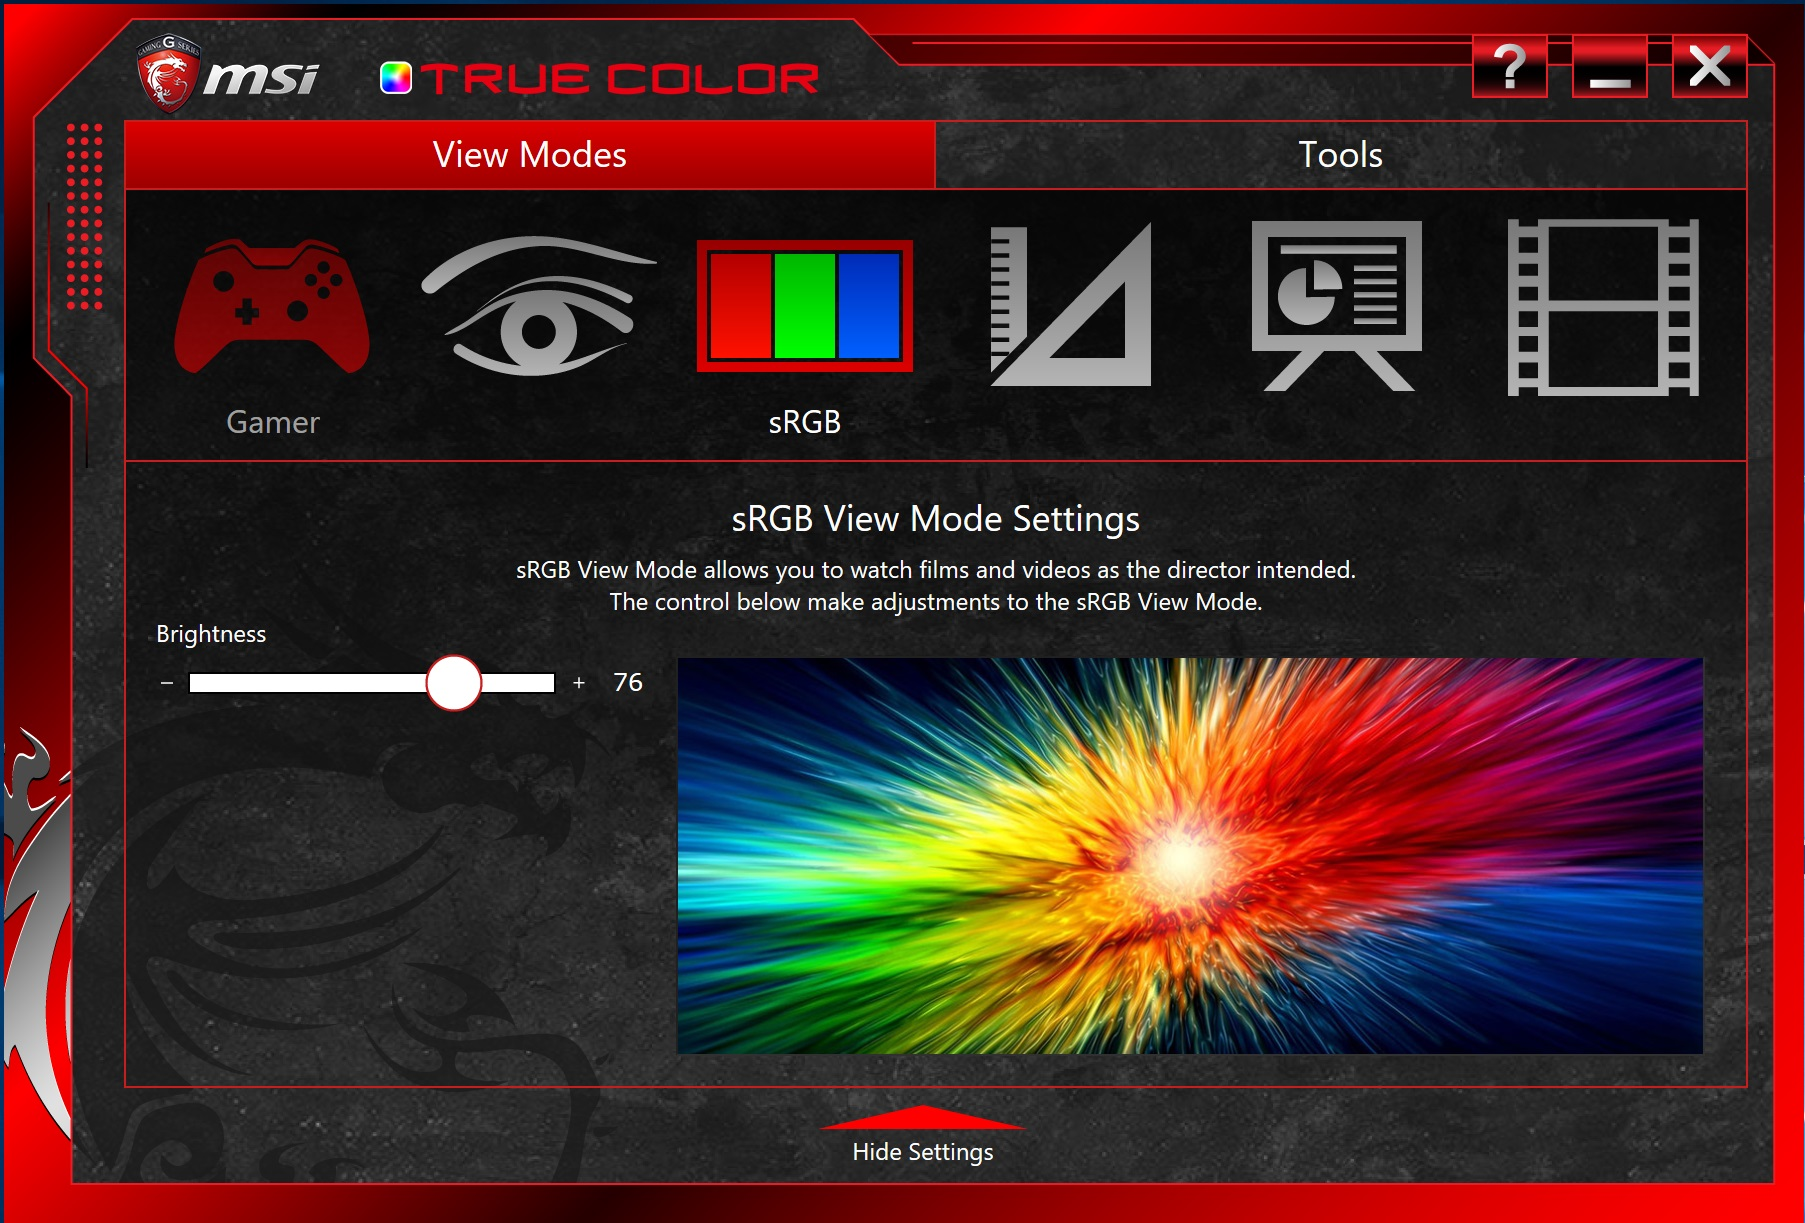 MSI TrueColor